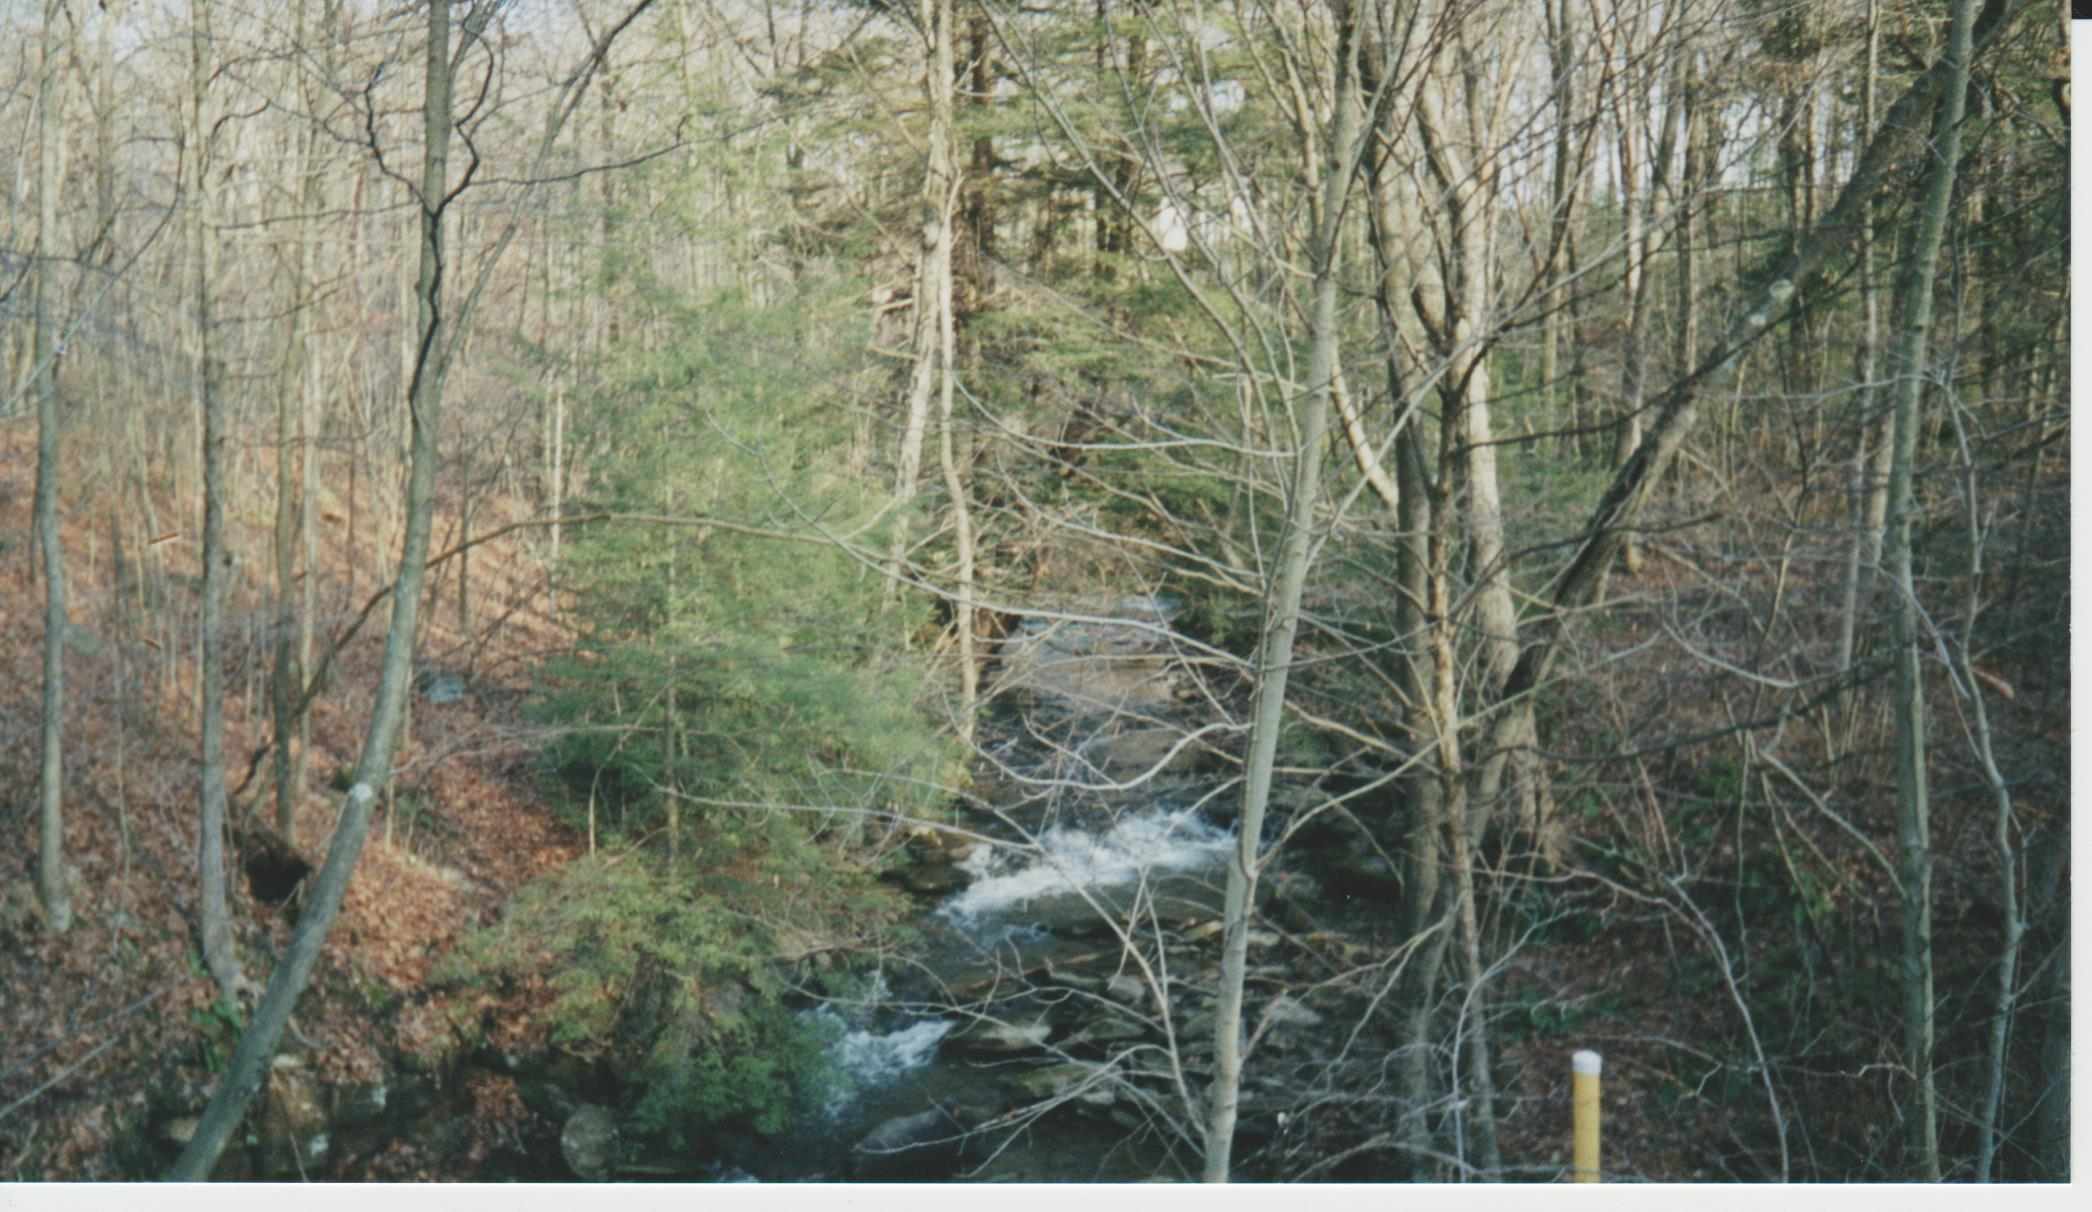 bare-trees-creek-flowing-over-rocks